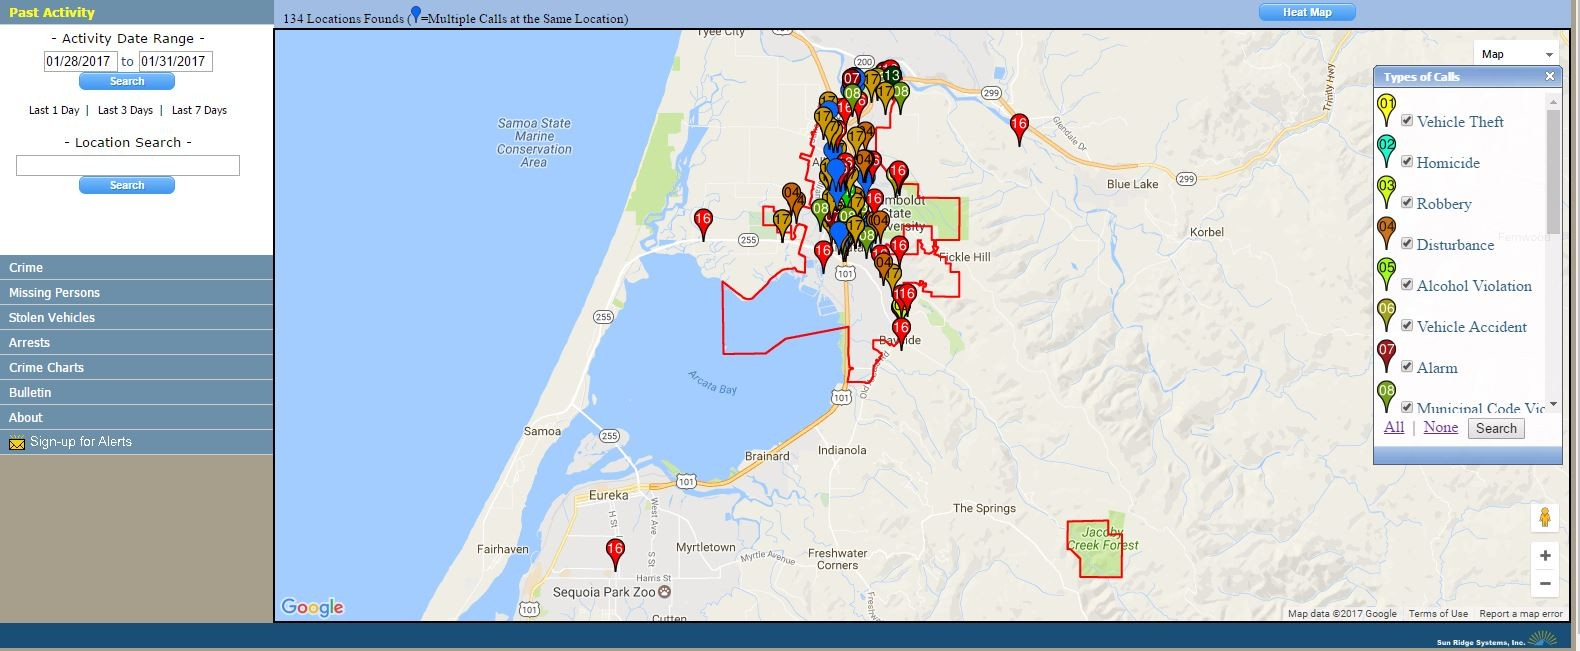 Arcata Introduces Online Crime Tracking News Blog